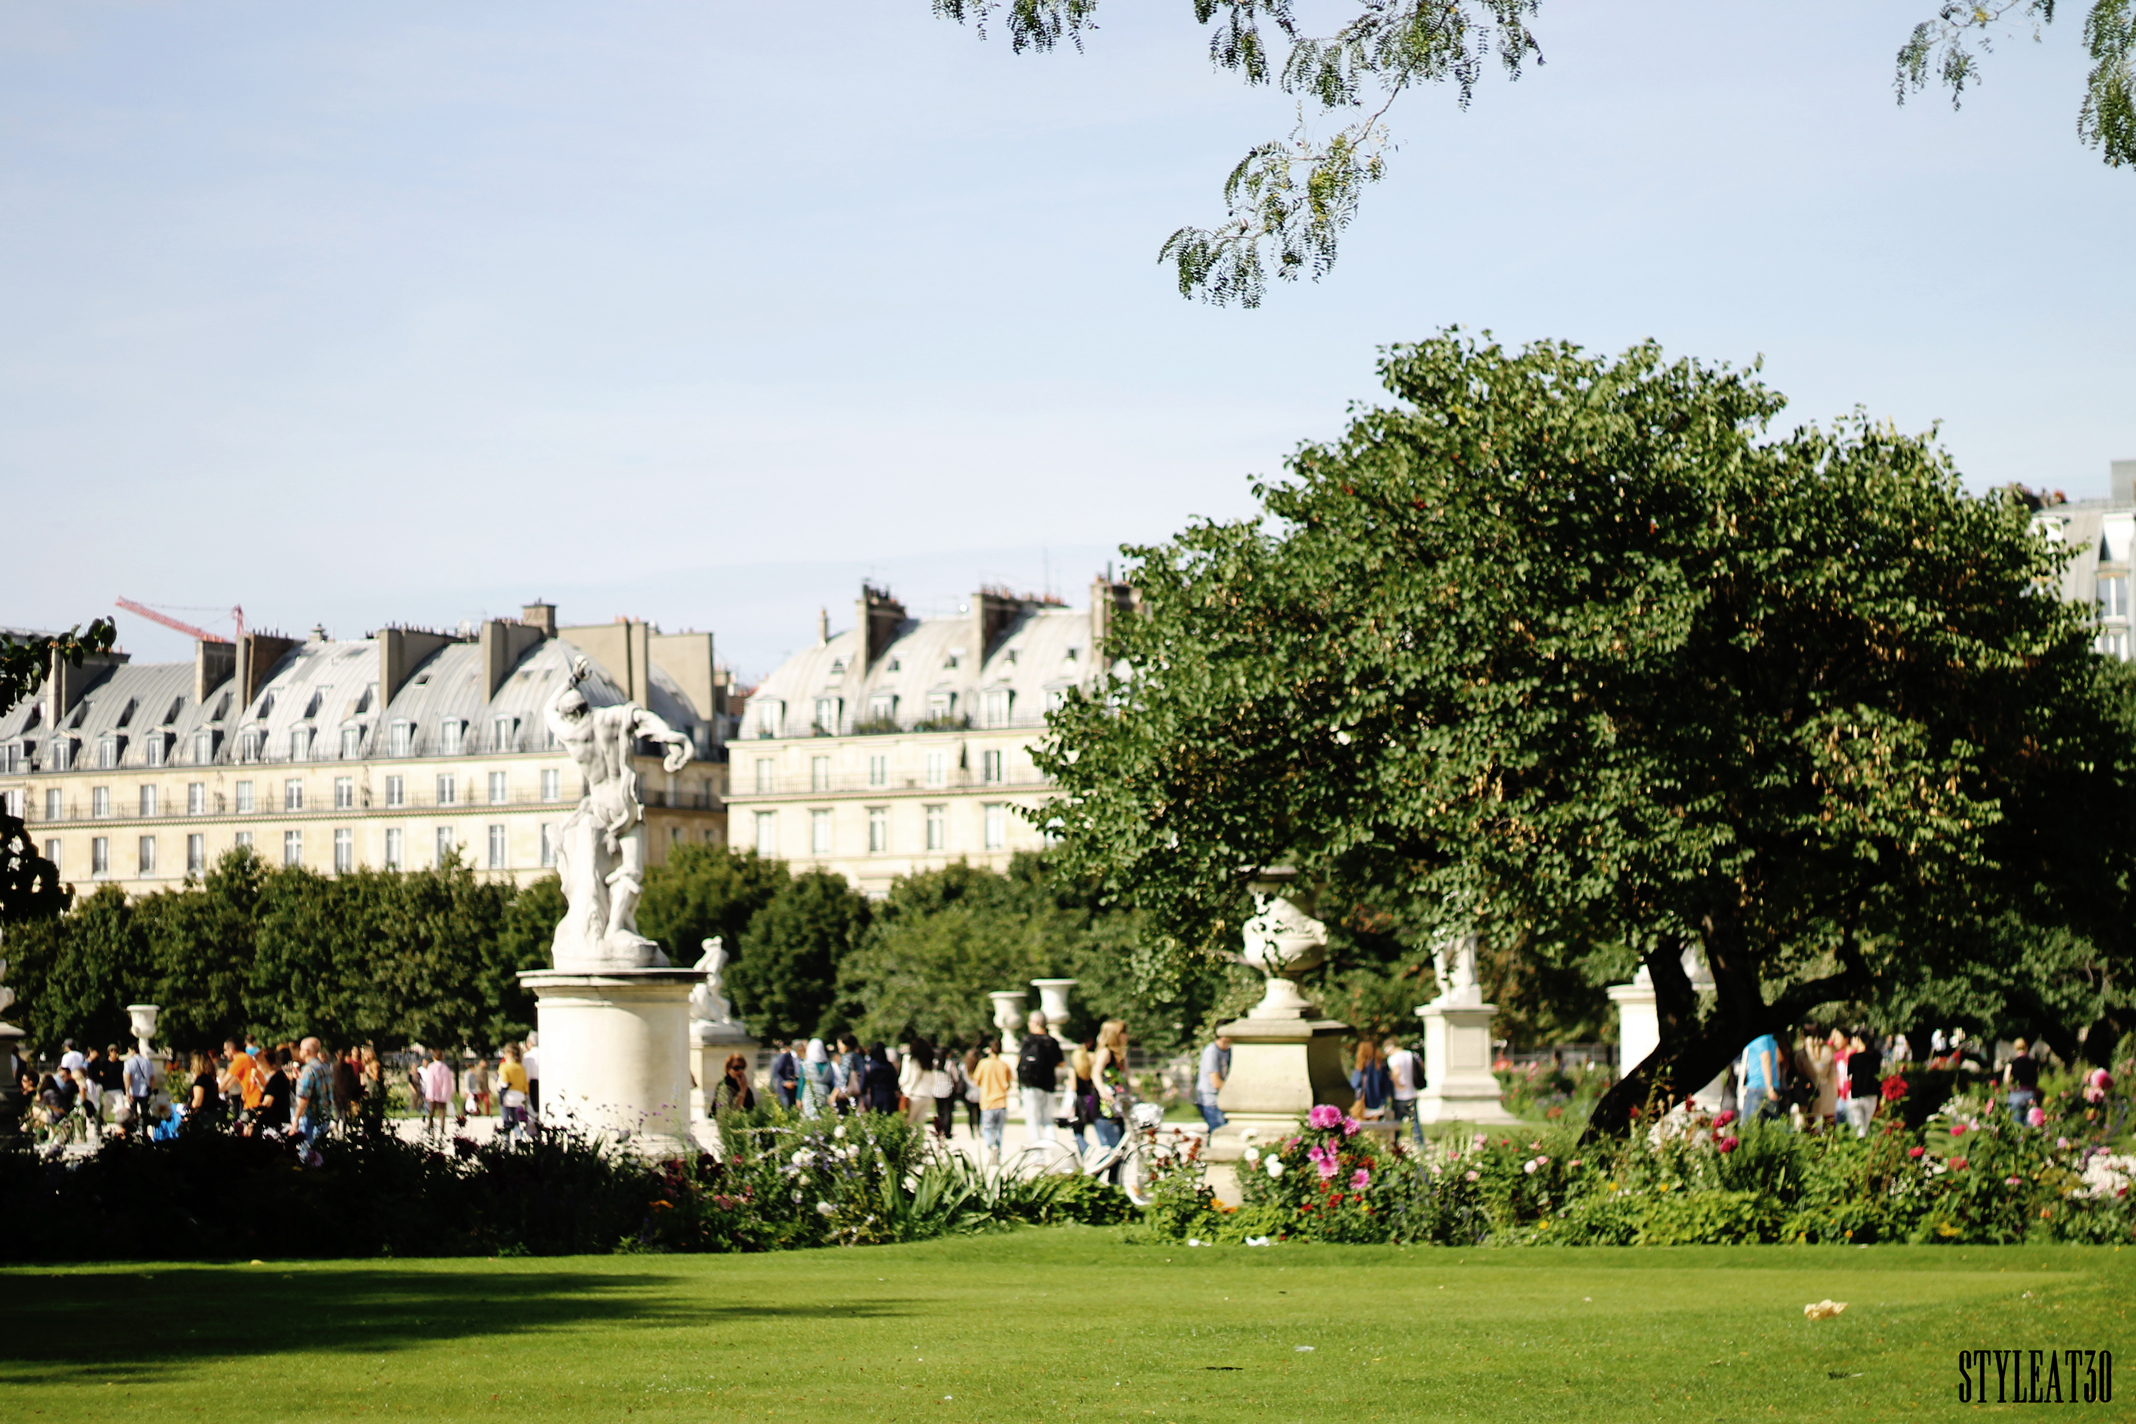 Moments at mus e du louvre jardin du luxembourg styleat30 for Jardin du luxembourg